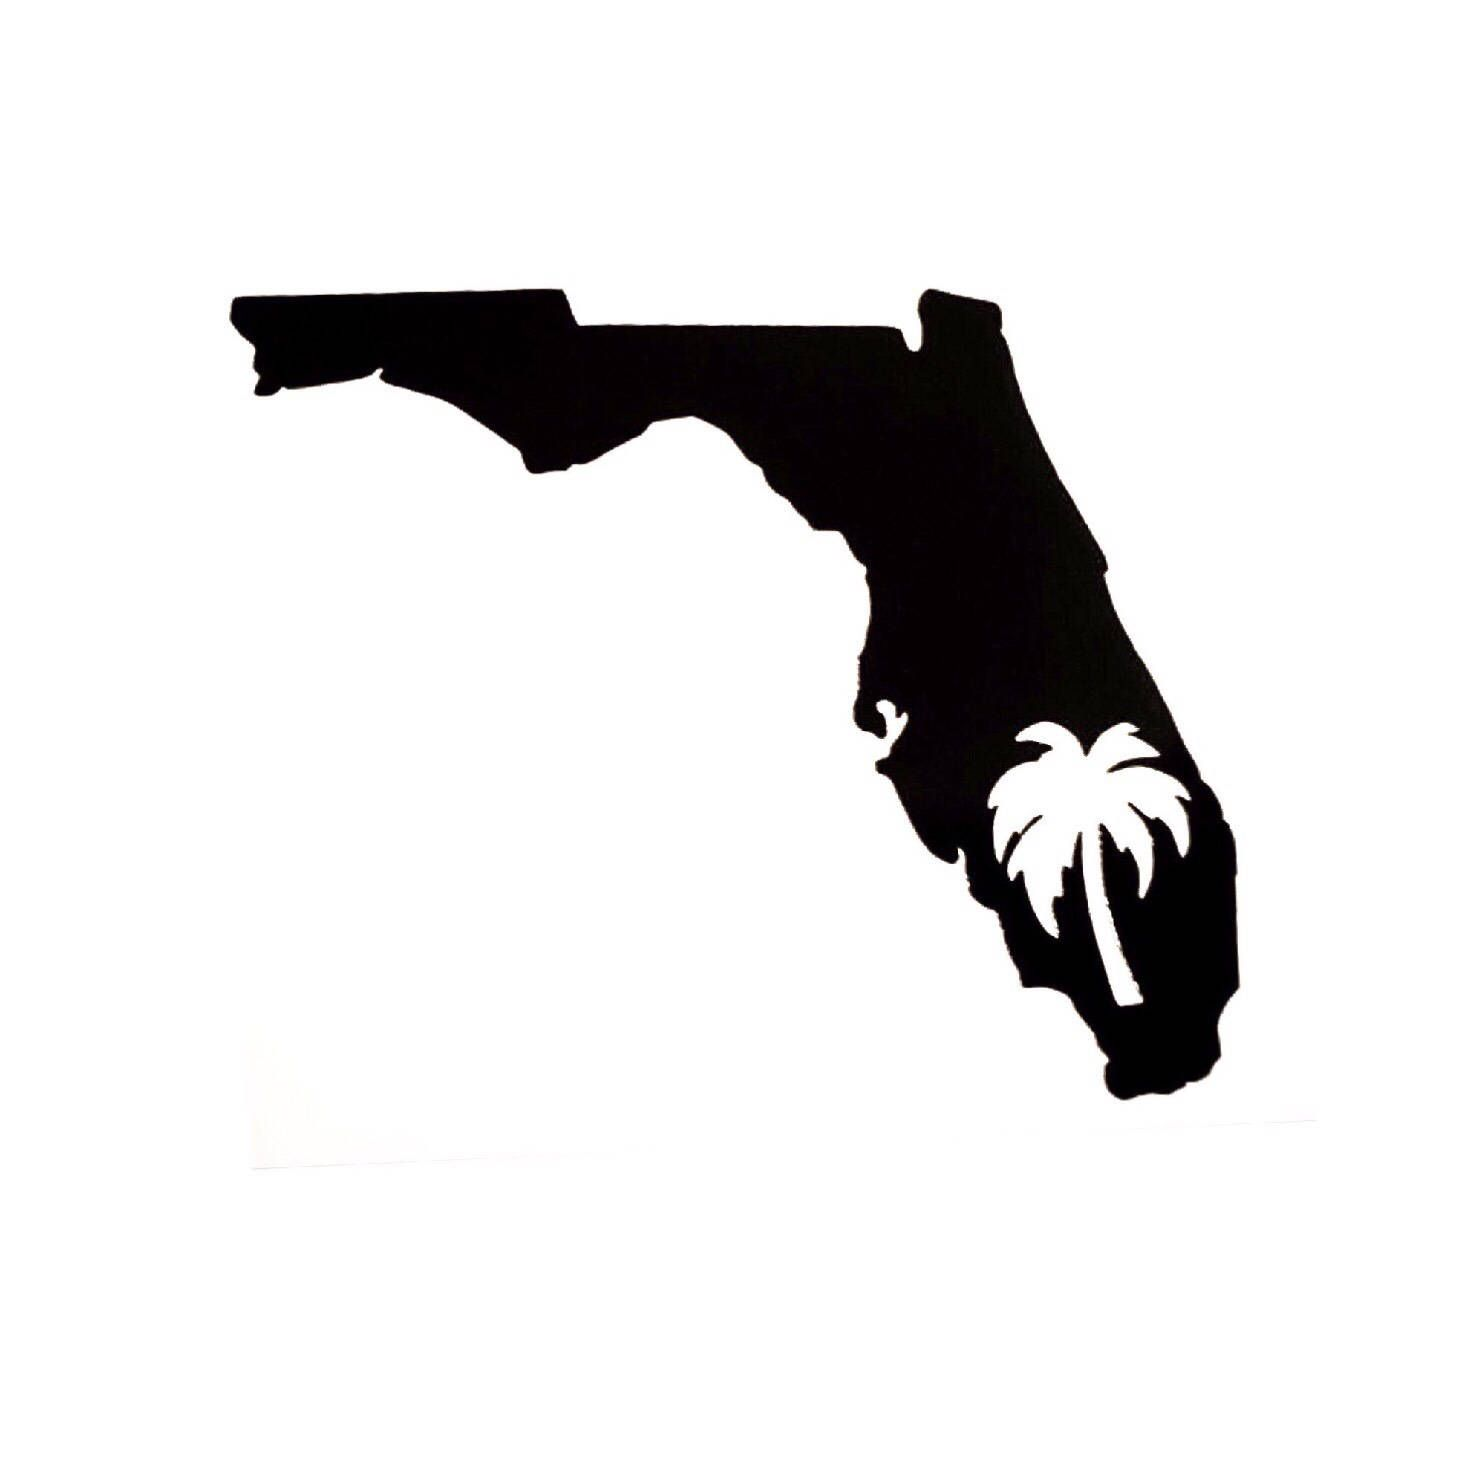 Florida Palm Tree Decal Florida State Decal Palm Tree Etsy Florida Palm Trees Tree Decals Palm Tree Decorations [ 1472 x 1472 Pixel ]